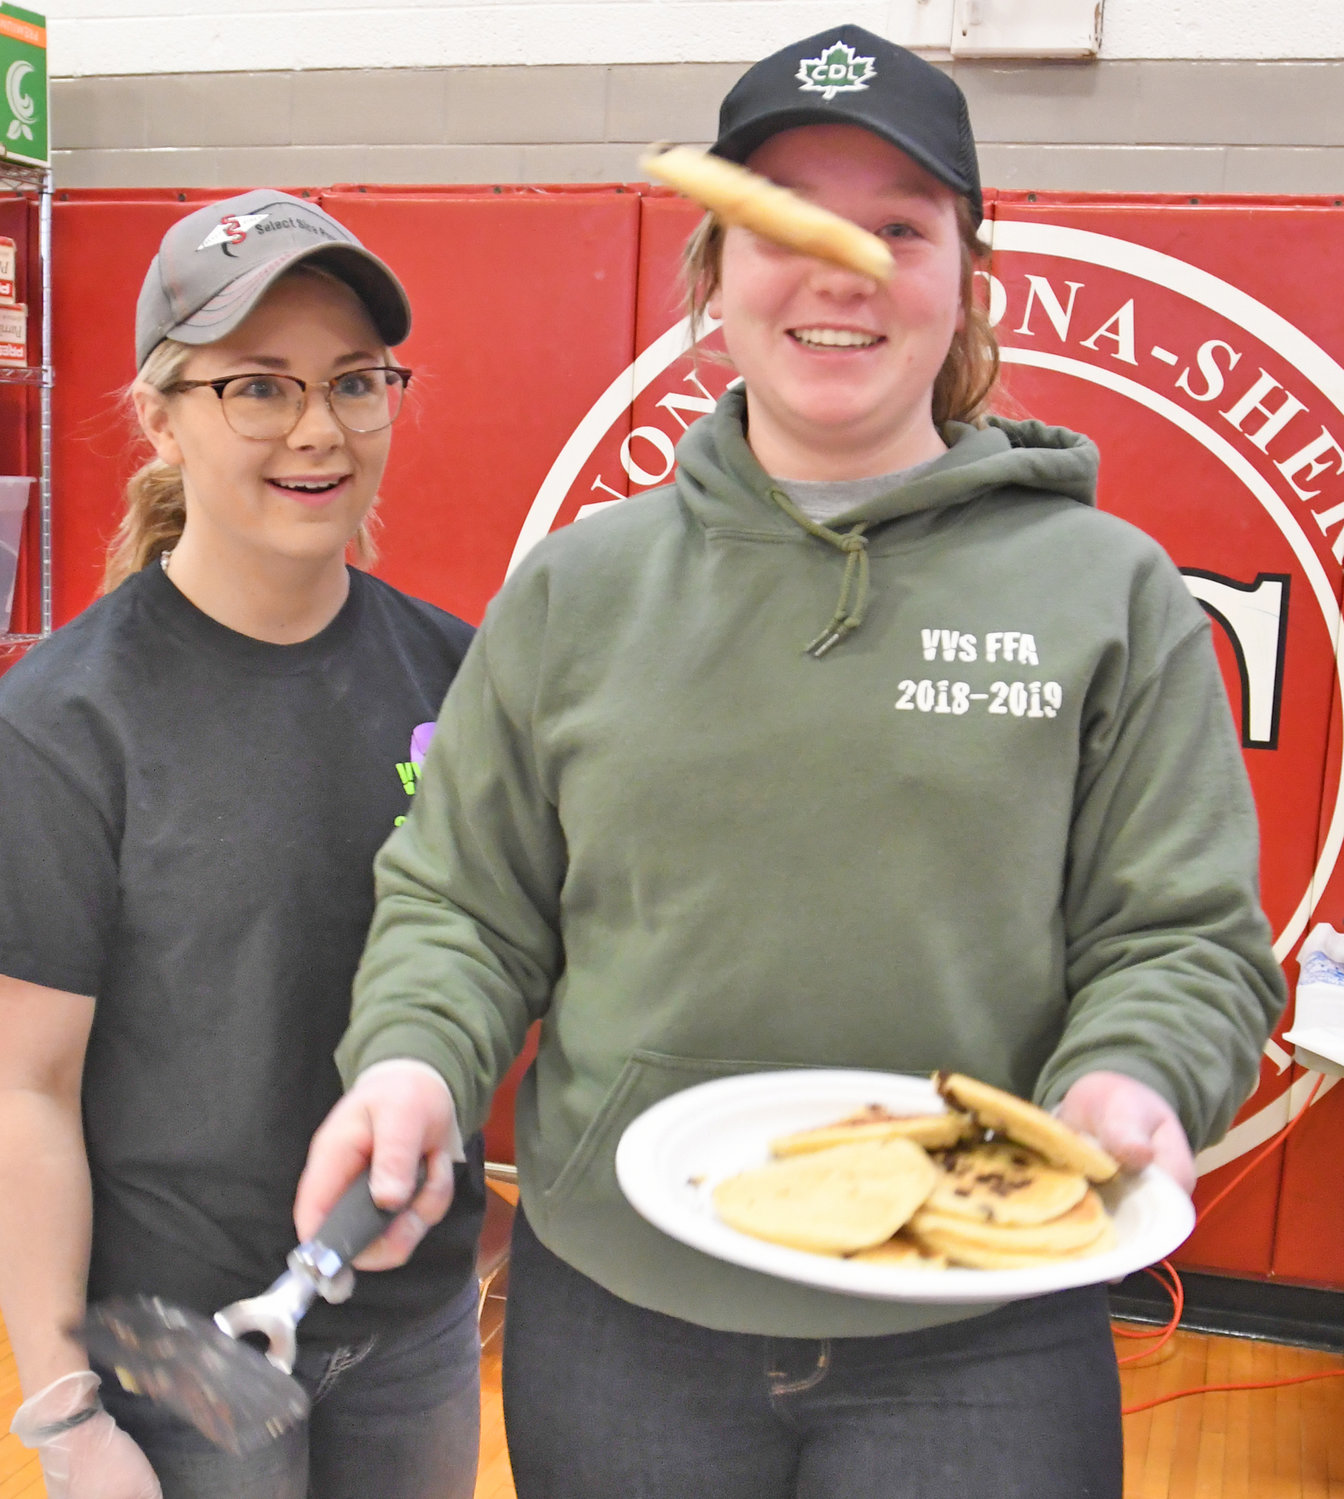 FLIPPING FOR FLAP JACKS — Gabby Adams, left, president of VVS FFA smiles as Danann Lohr, VP of VVS FFA, flips a pancake on to a plate this morning. The VVS Future Farmers of America are celebrating Maple Weekend today and Sunday, as well as March 30, 31.